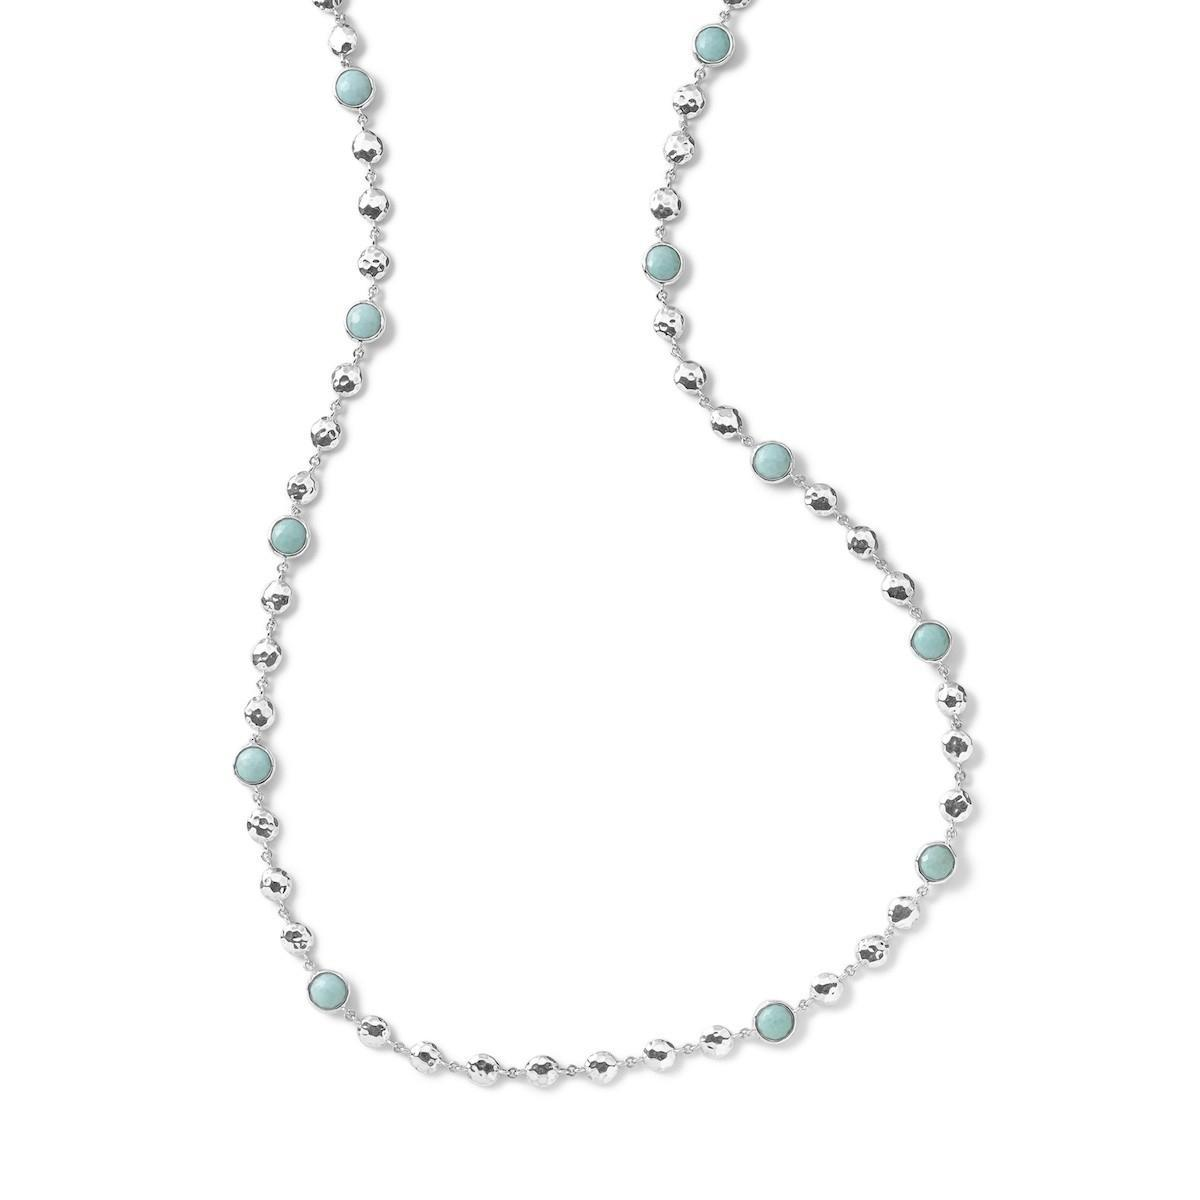 IPPOLITA Silver Rock Candy Long Necklace in